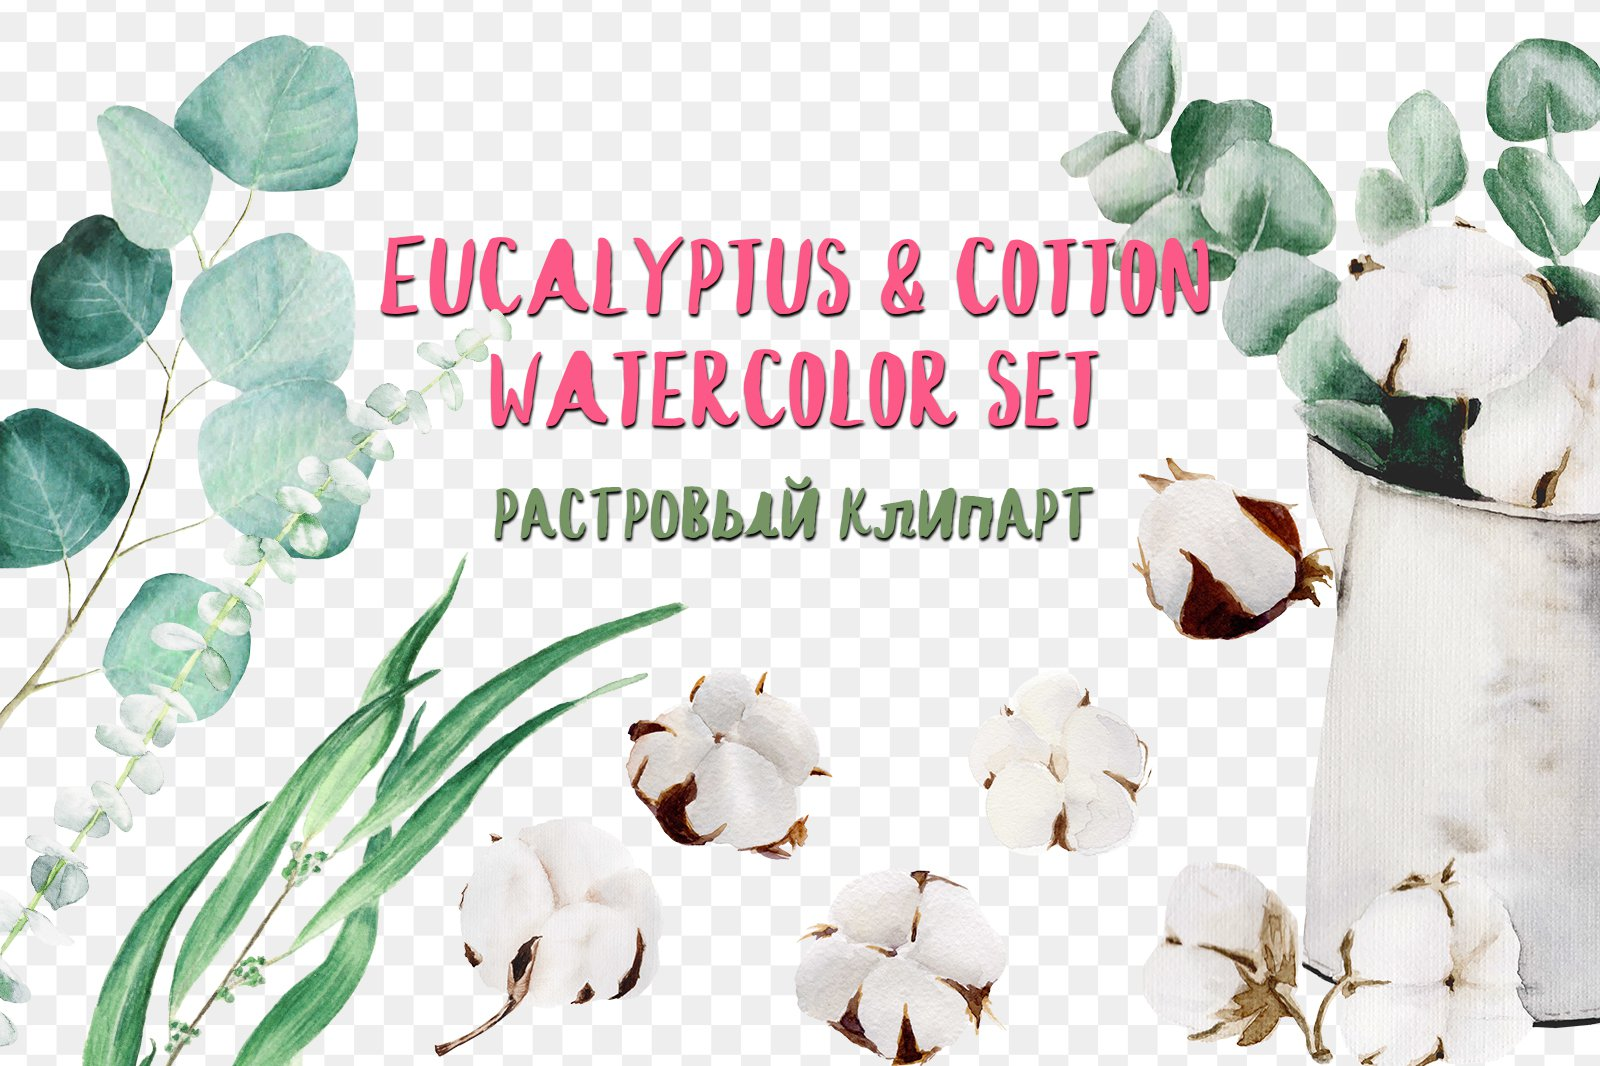 Eucalyptus & cotton watercolor set хлопок png скачать